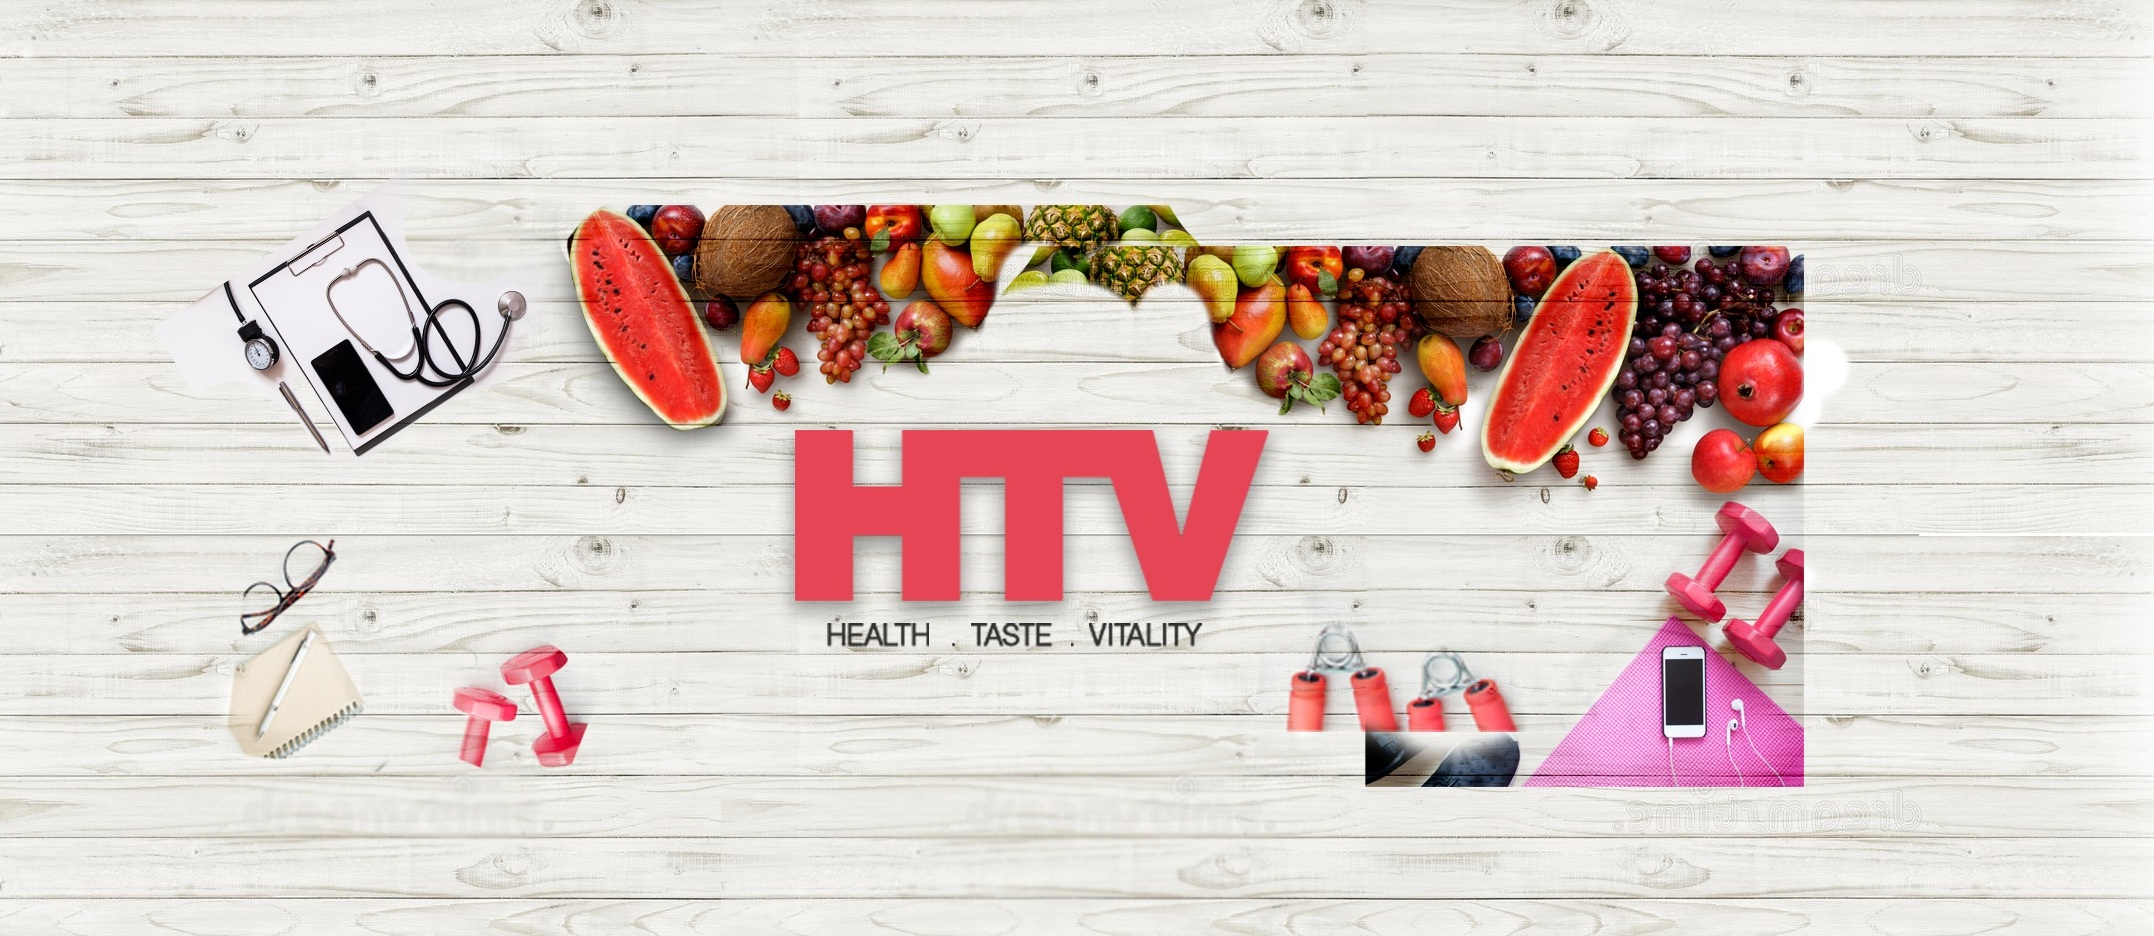 HTV Stands for